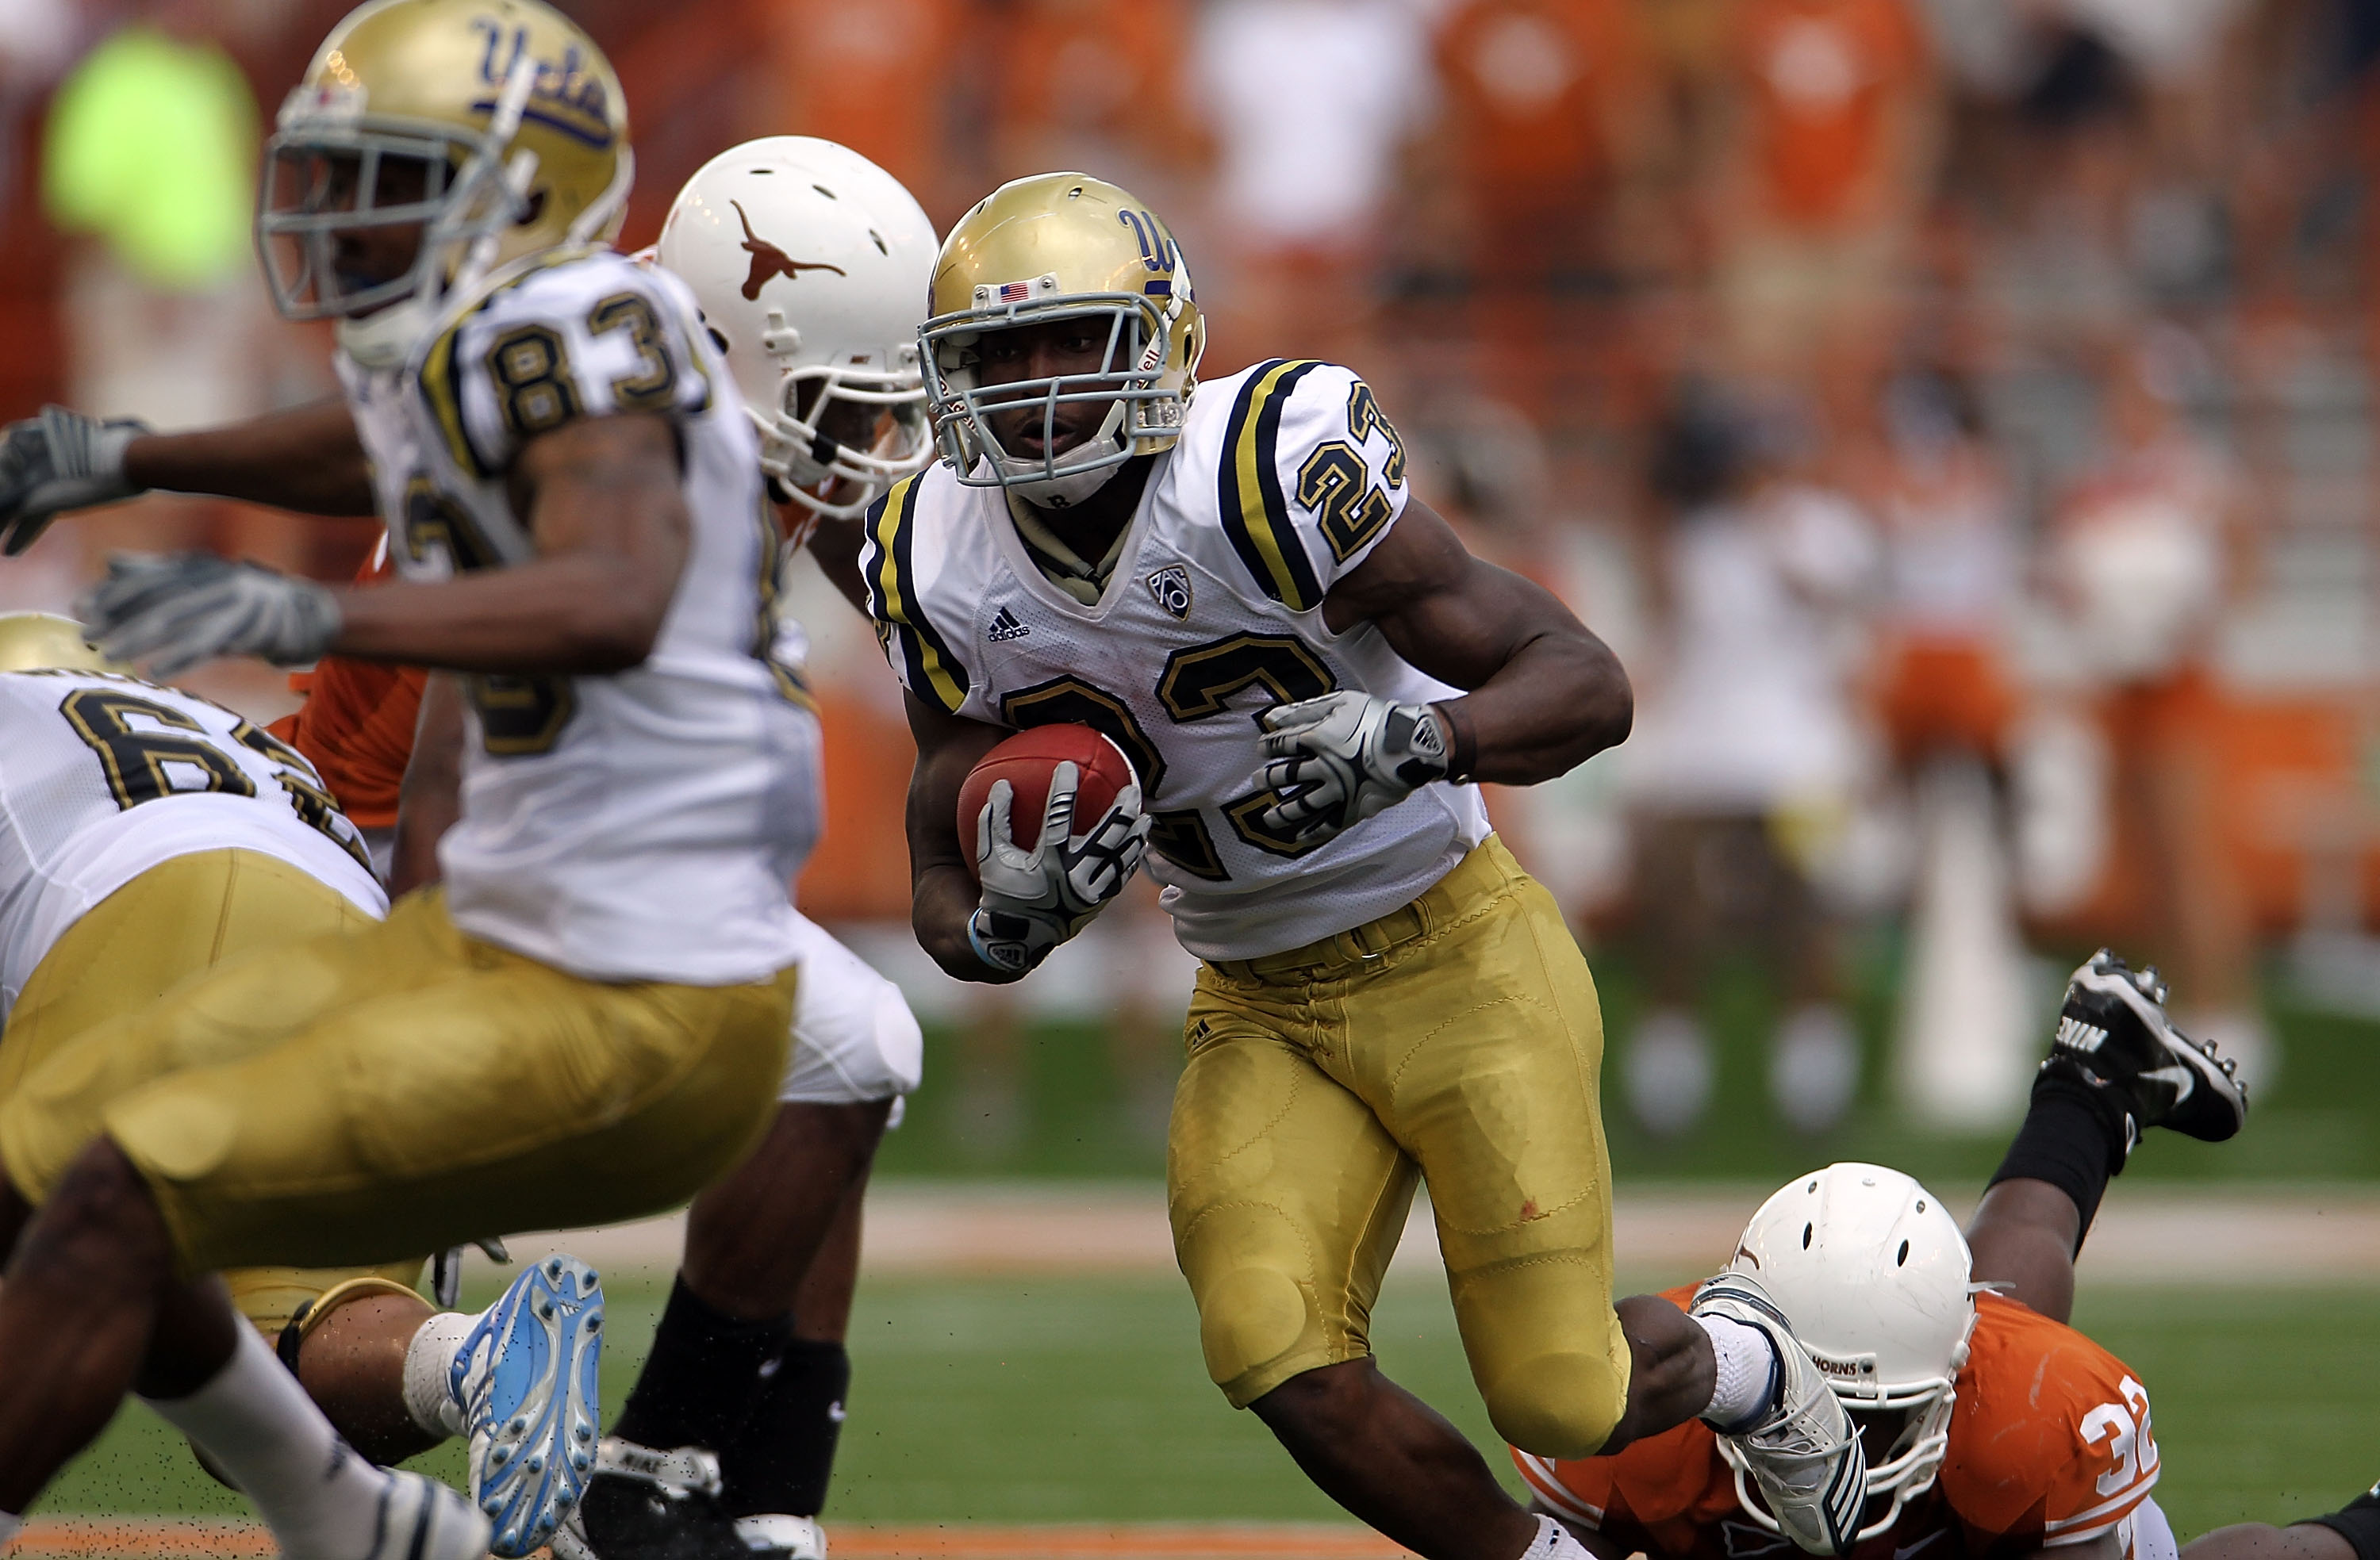 AUSTIN, TX - SEPTEMBER 25:  Tailback Johnathan Franklin #23 of the UCLA Bruins runs the ball against the Texas Longhorns at Darrell K Royal-Texas Memorial Stadium on September 25, 2010 in Austin, Texas.  (Photo by Ronald Martinez/Getty Images)